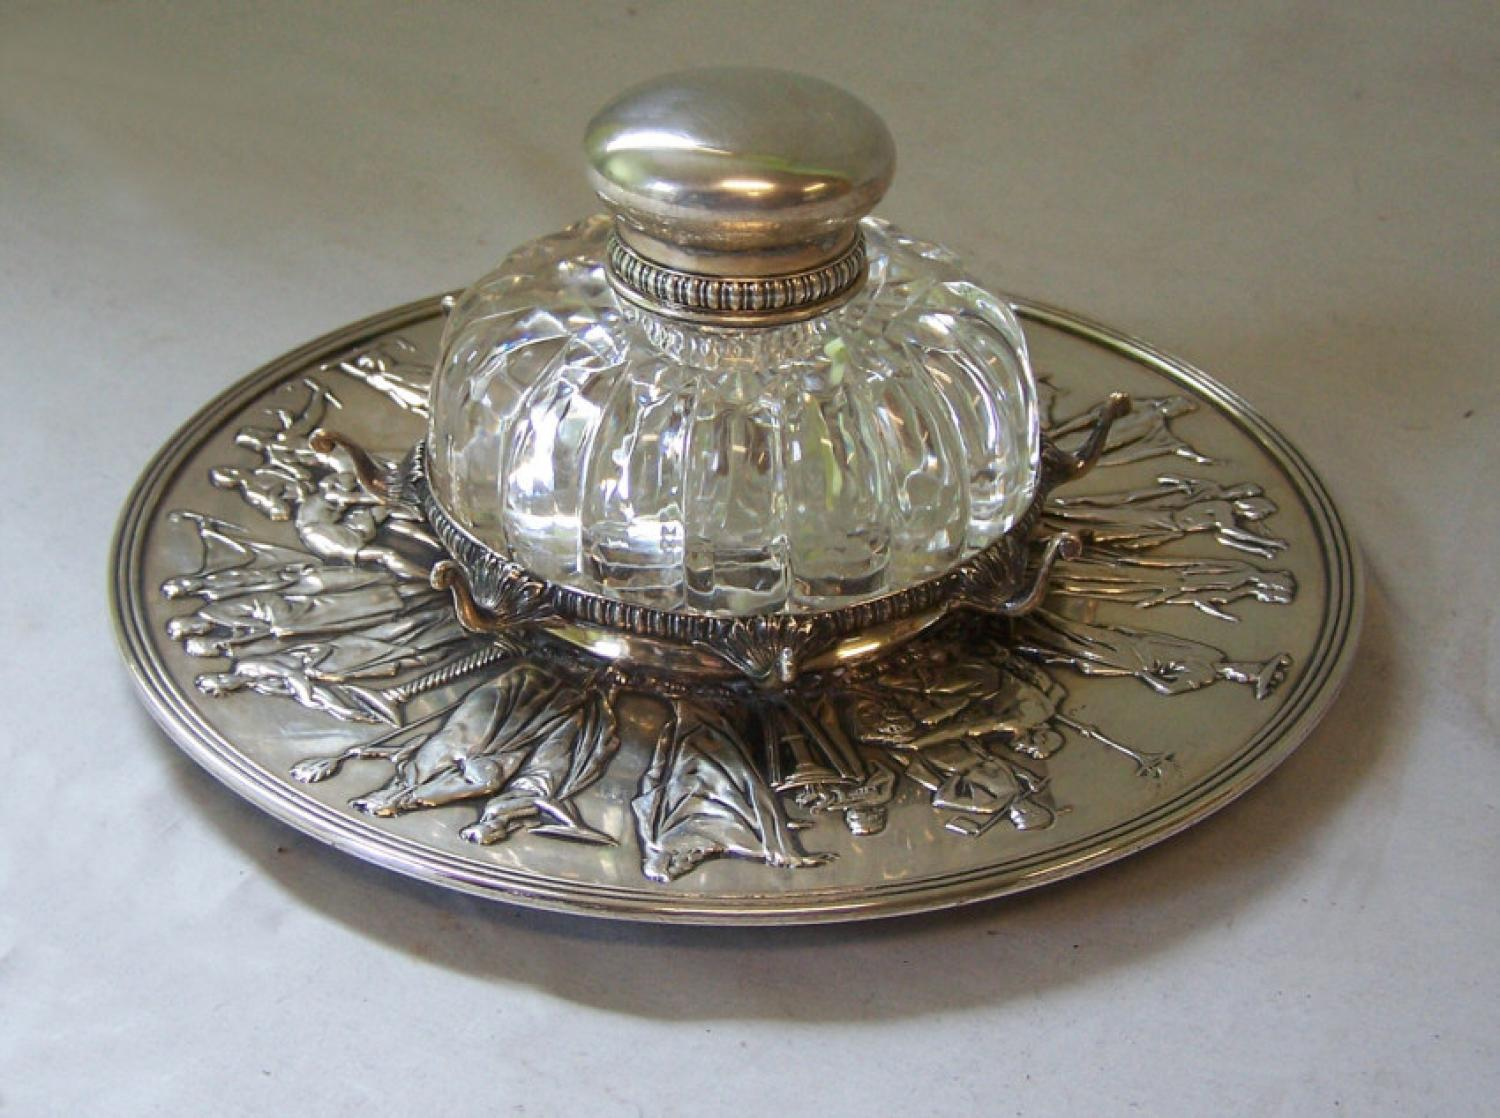 Tiffany Co Makers sterling silver desk inkwell and pen holder c1890